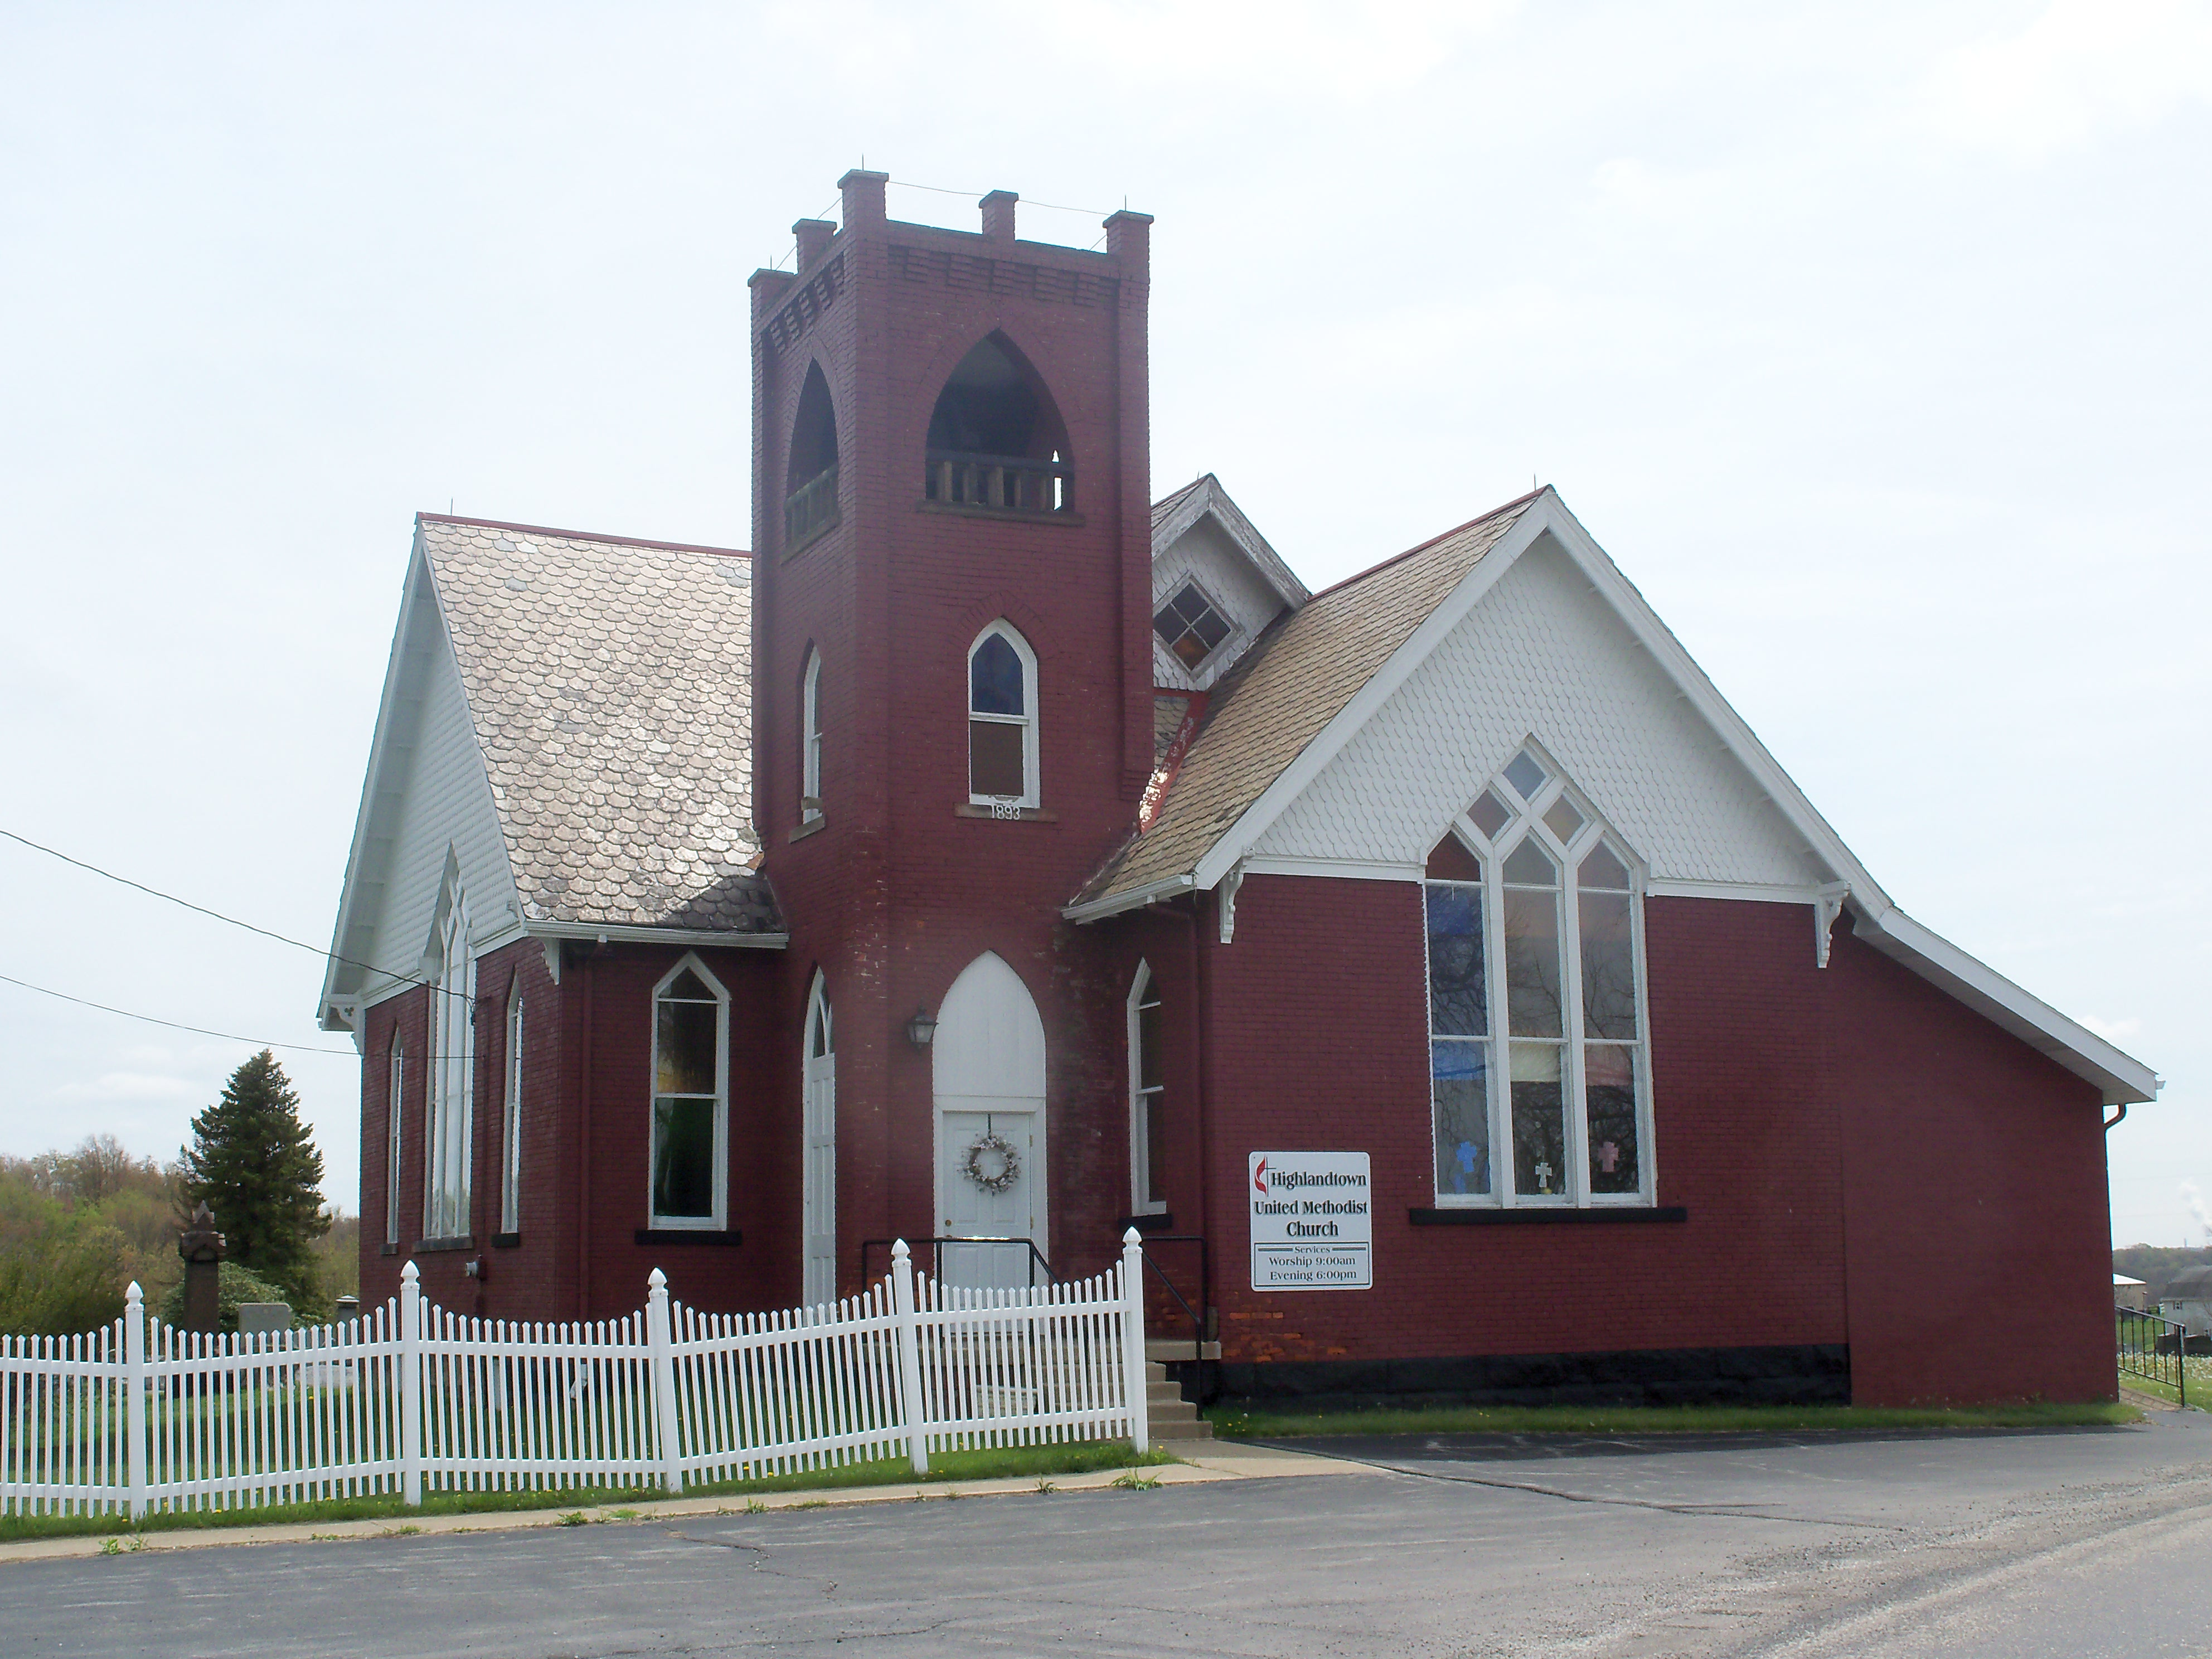 File:Highlandtown, Ohio UM Church.JPG - Wikimedia Commons